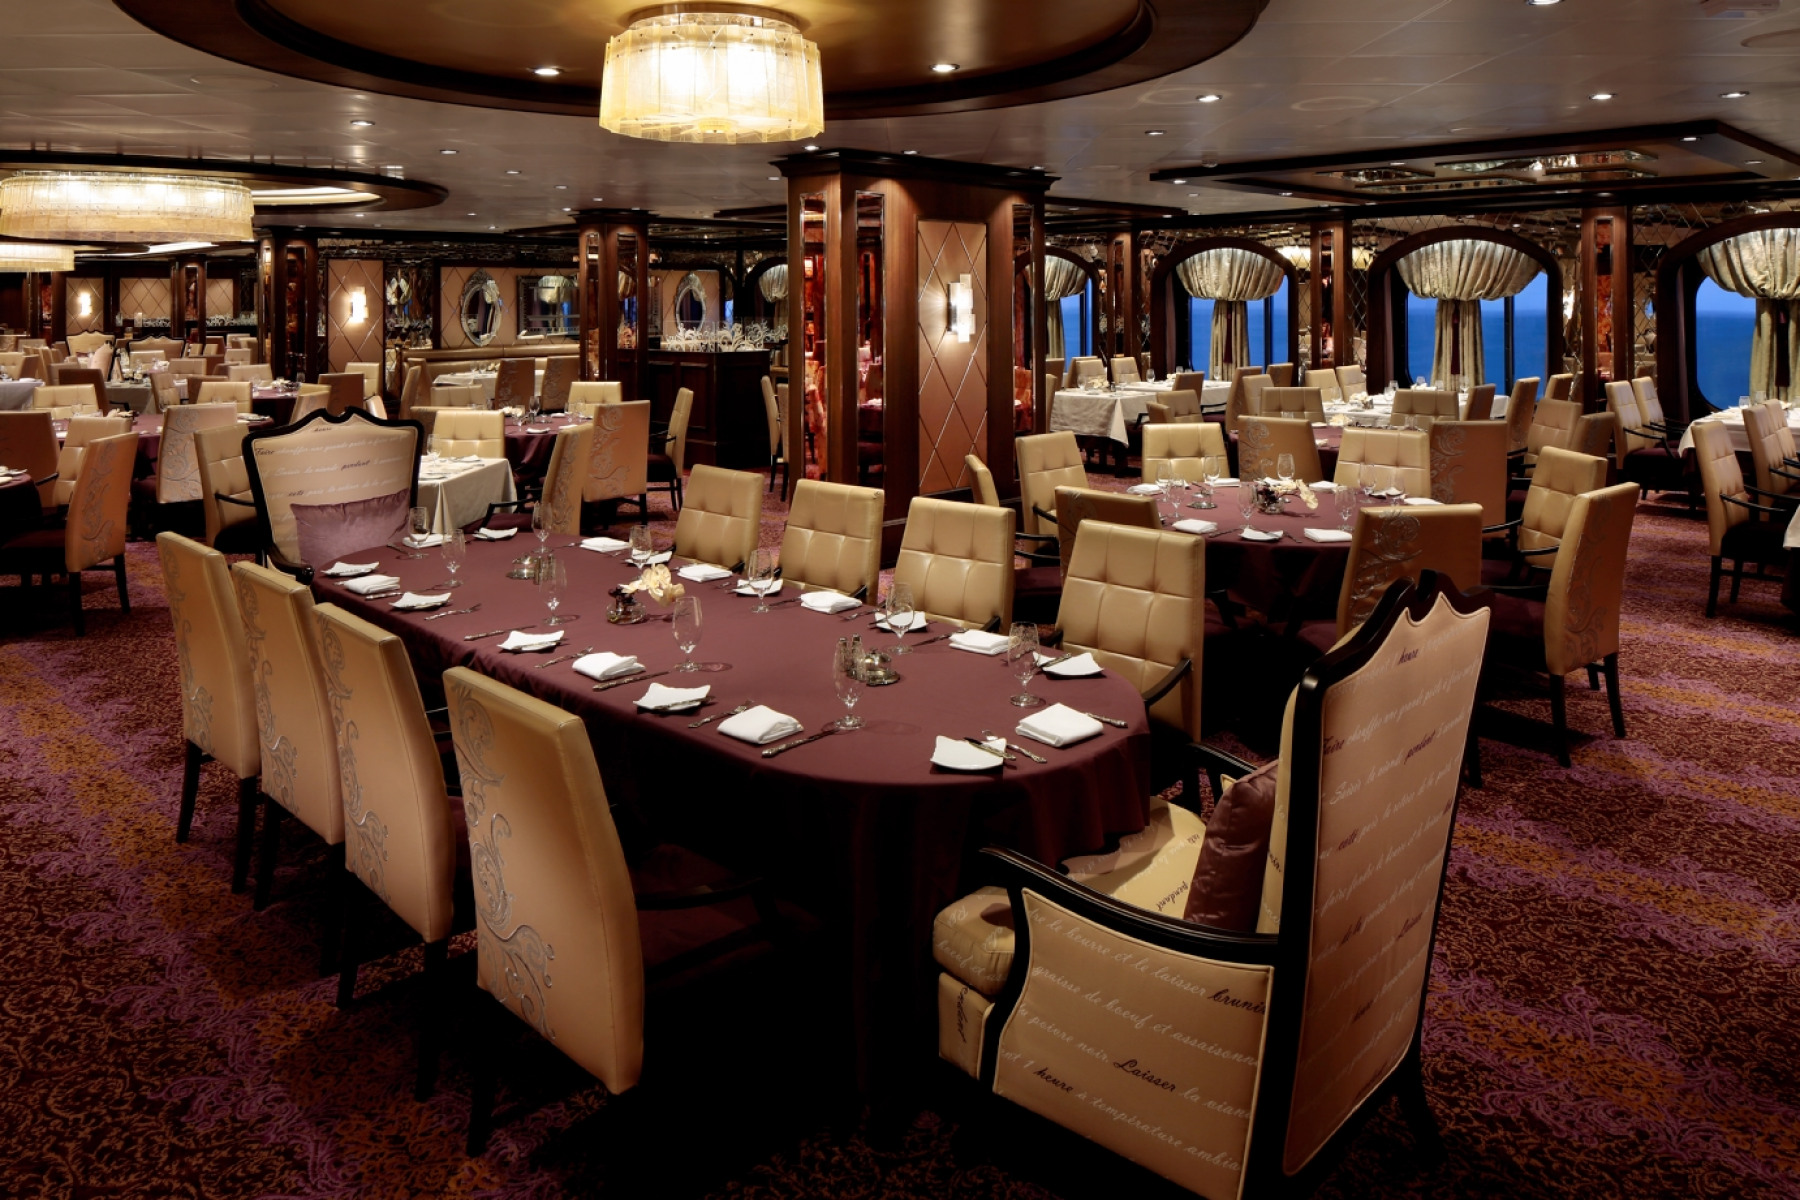 Royal Caribbean International Quantum of the Seas Interior The Grande Restaurant 4.jpg